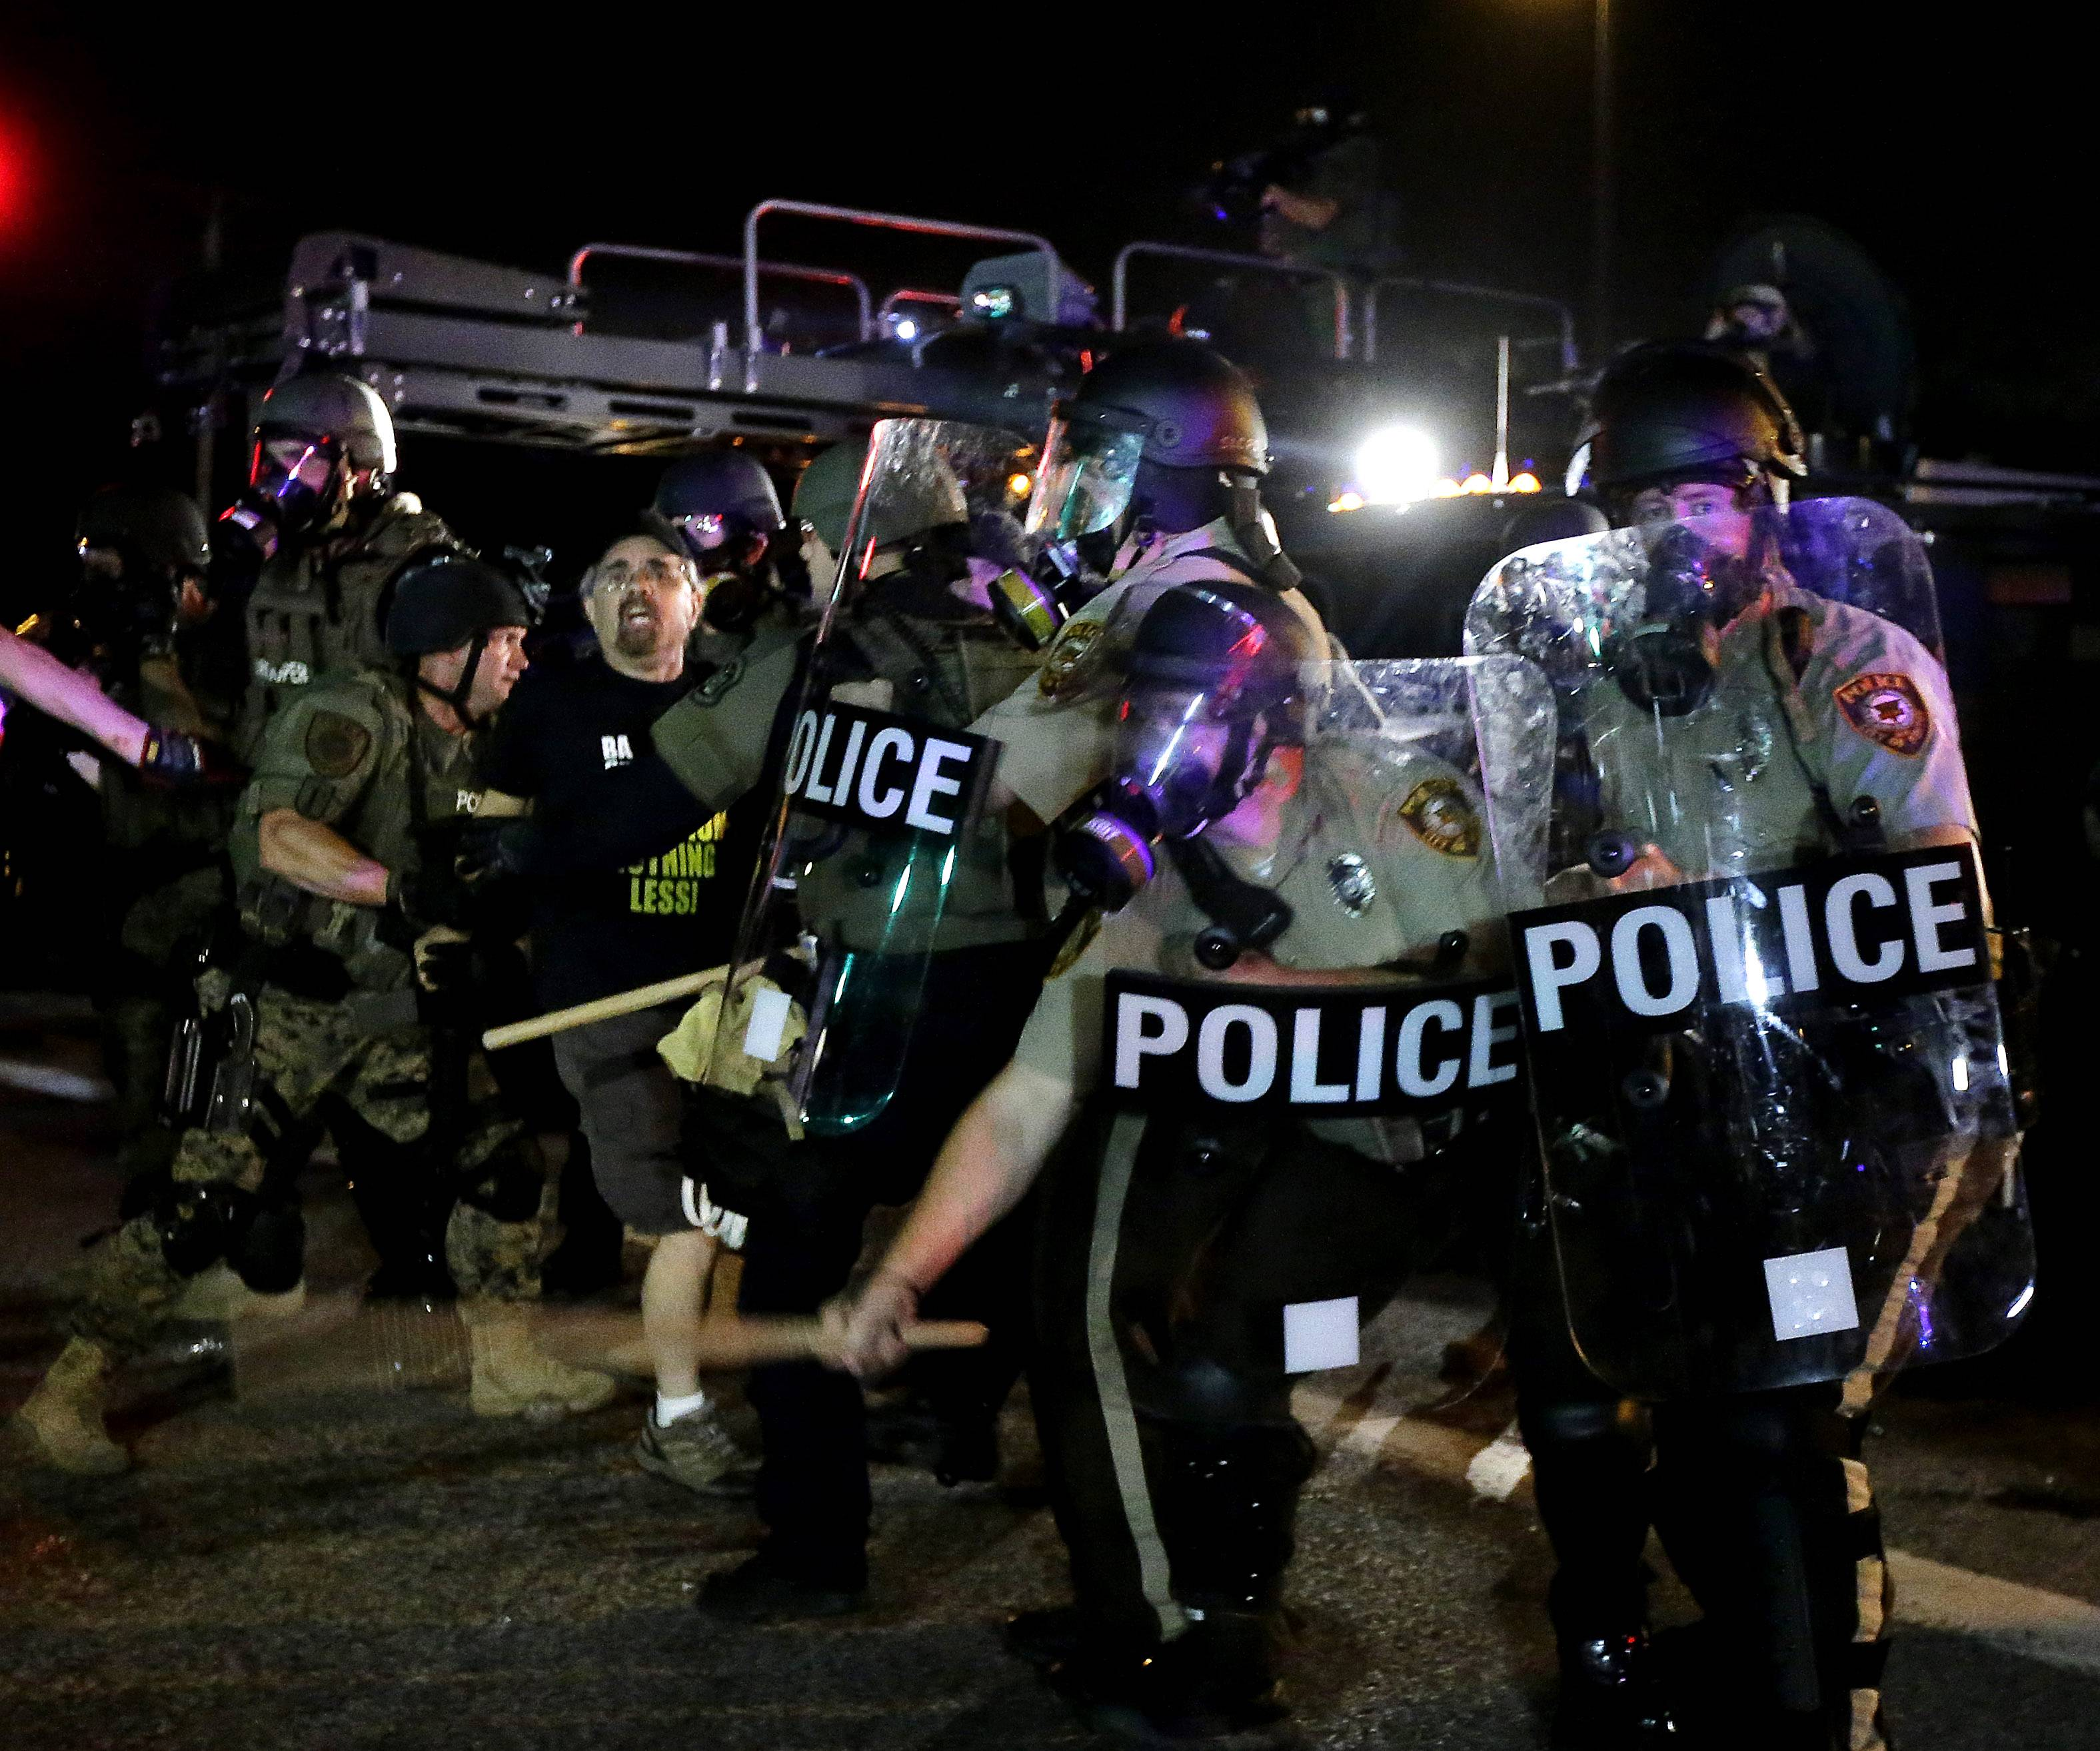 A man is detained after a standoff with police Monday, Aug. 18, 2014, during a protest for Michael Brown, who was killed by a police officer Aug. 9 in Ferguson, Mo. Brown's shooting has sparked more than a week of protests, riots and looting in the St. Louis suburb.